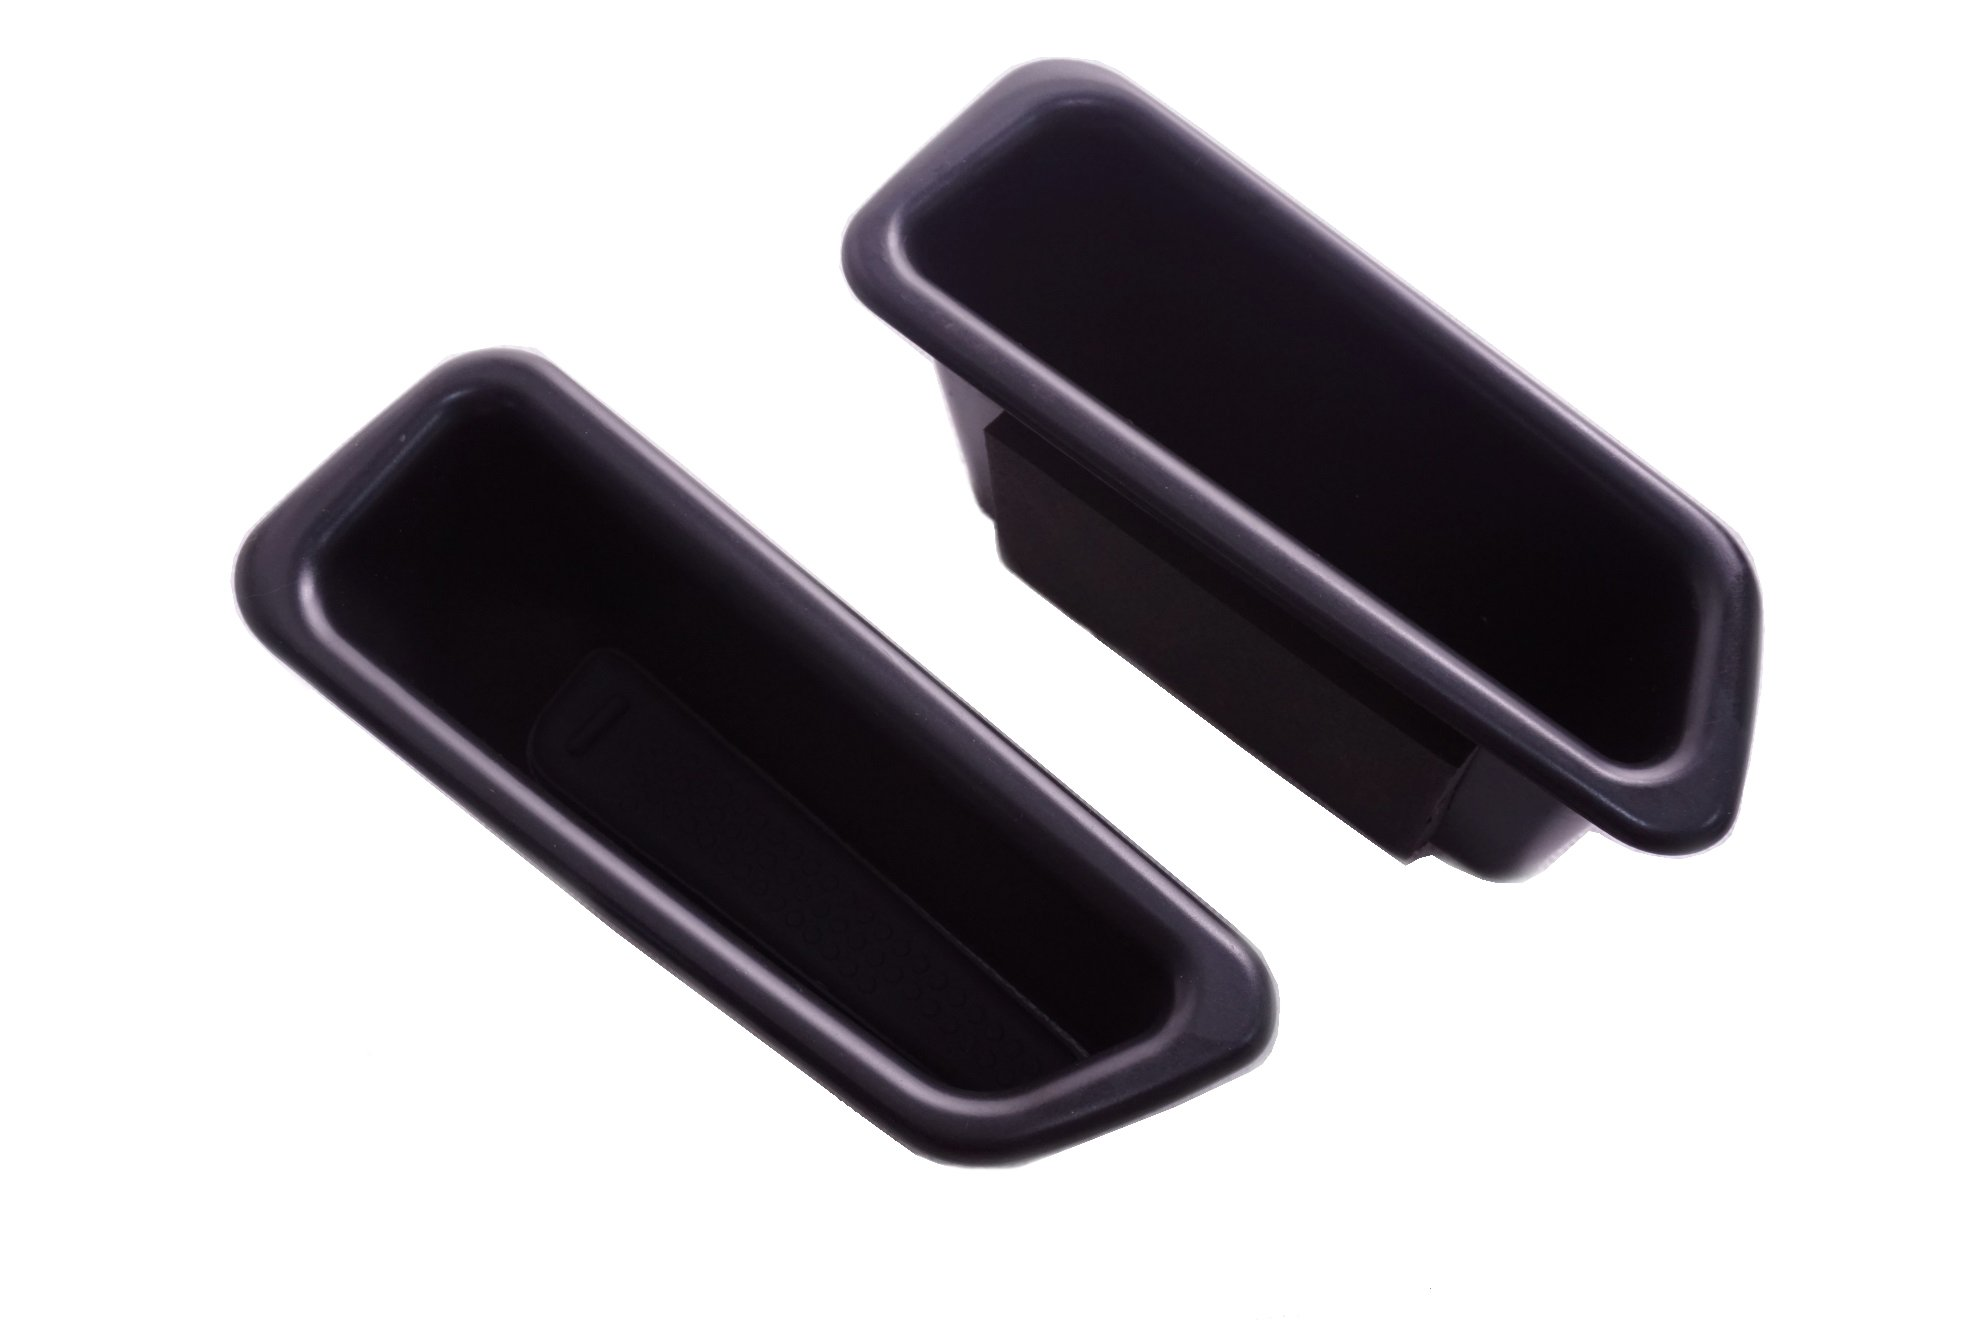 Vesul 2Pcs Black Front Row Door Side Storage Box Handle Armrest Phone Container For Volvo S60 2009-2017 V60 2009-2017 by Vesul